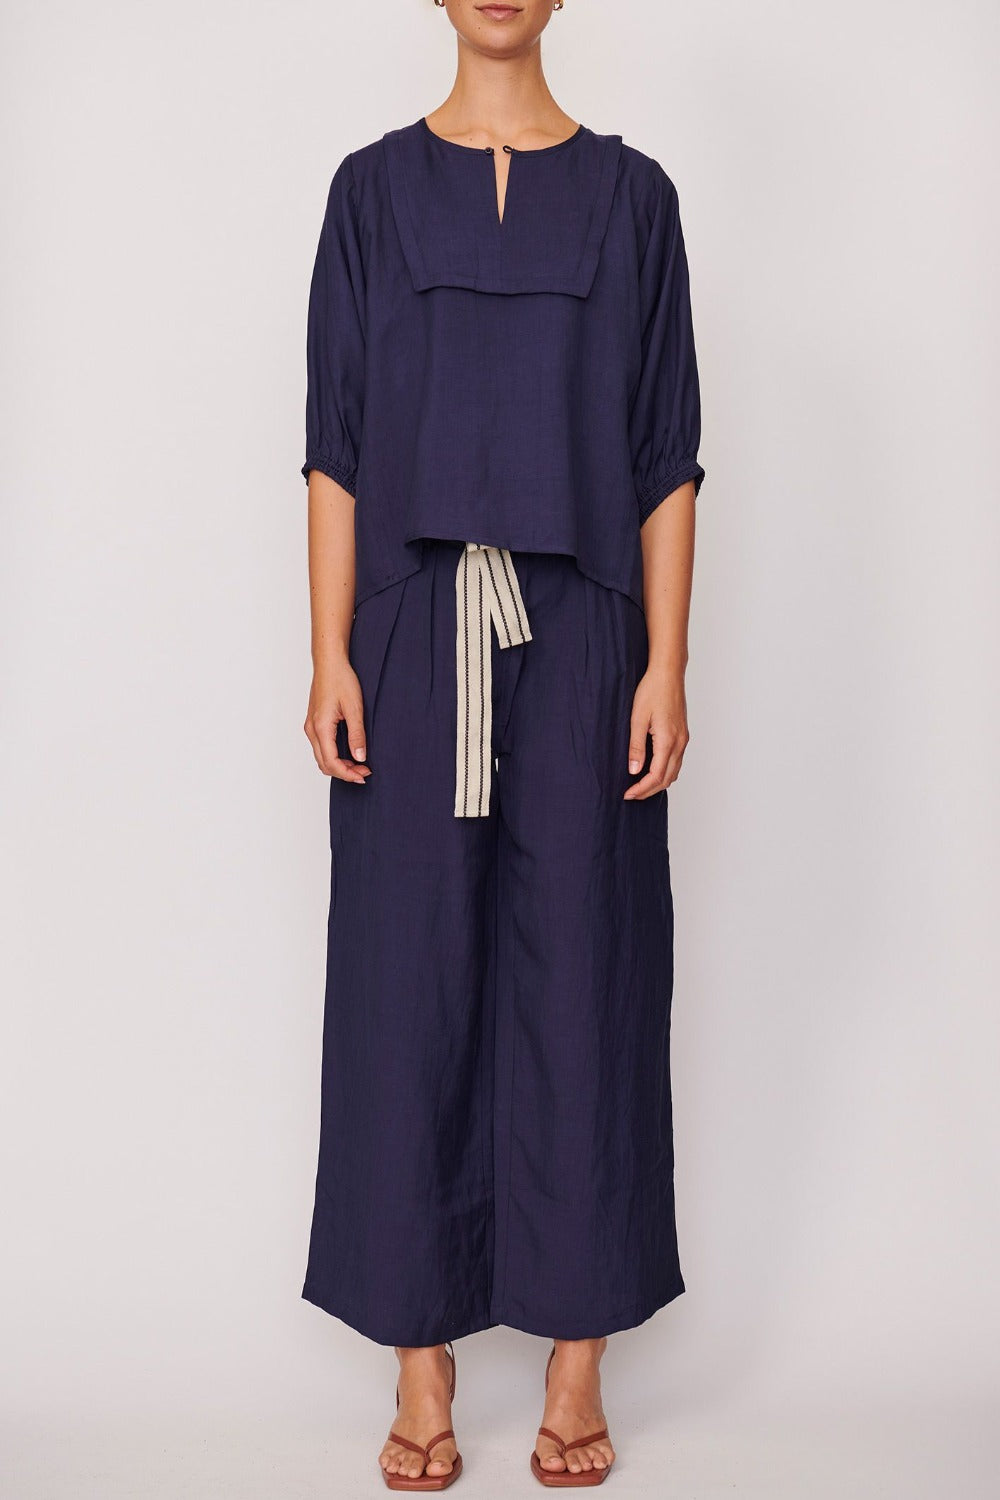 35% linen, 20% rayon, 45% polyester . Fixed waistband with belt loops, hip and back pockets, pleats at the centre front of each leg, a wide leg fit